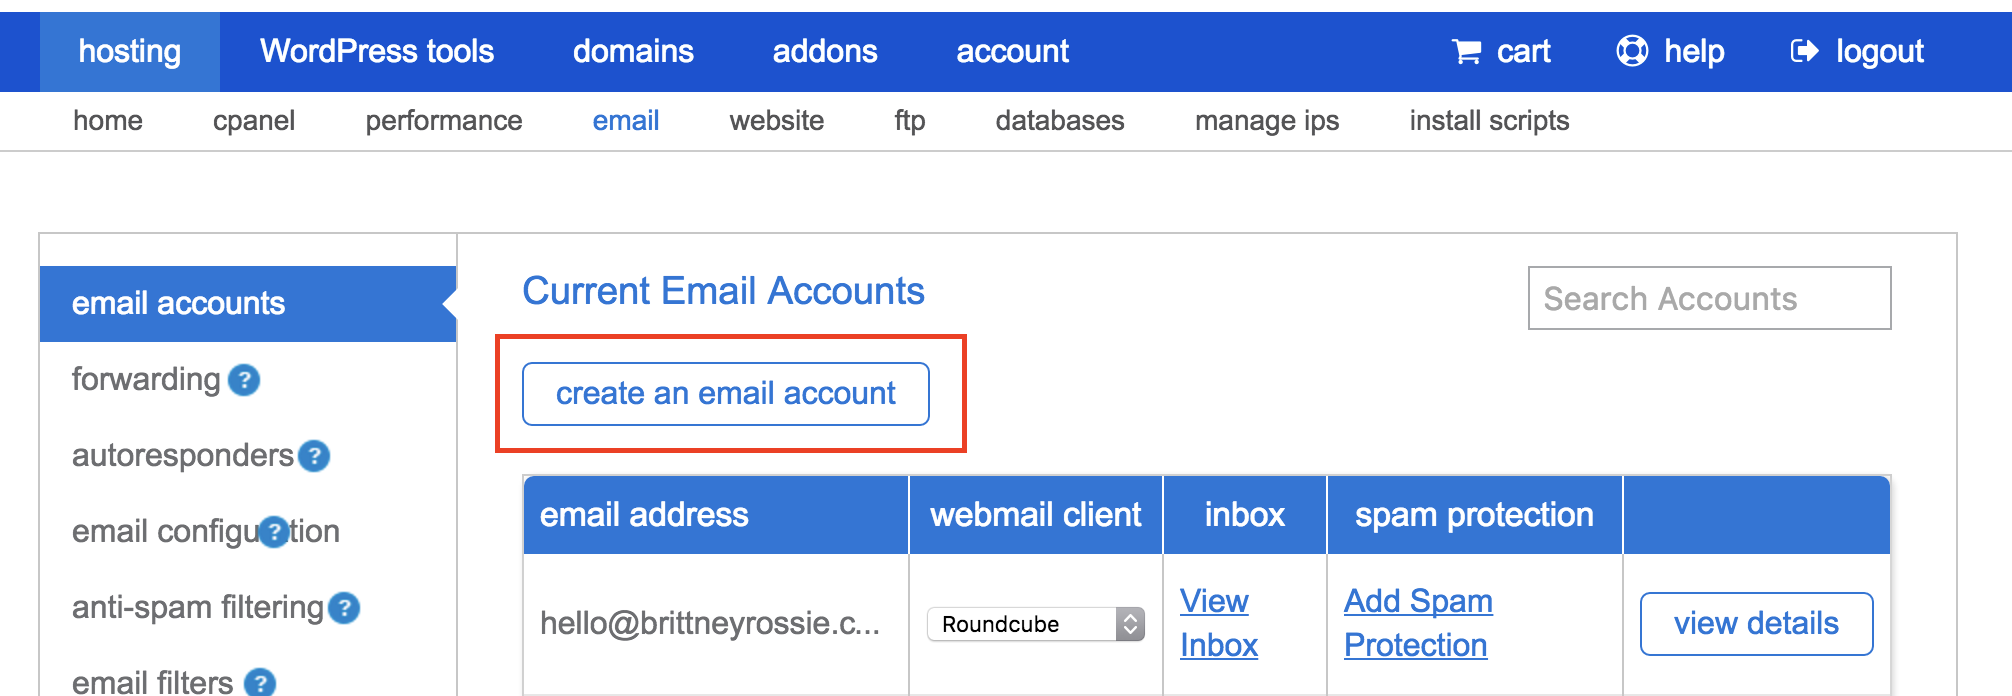 Squarespace & Bluehost Email Tutorial